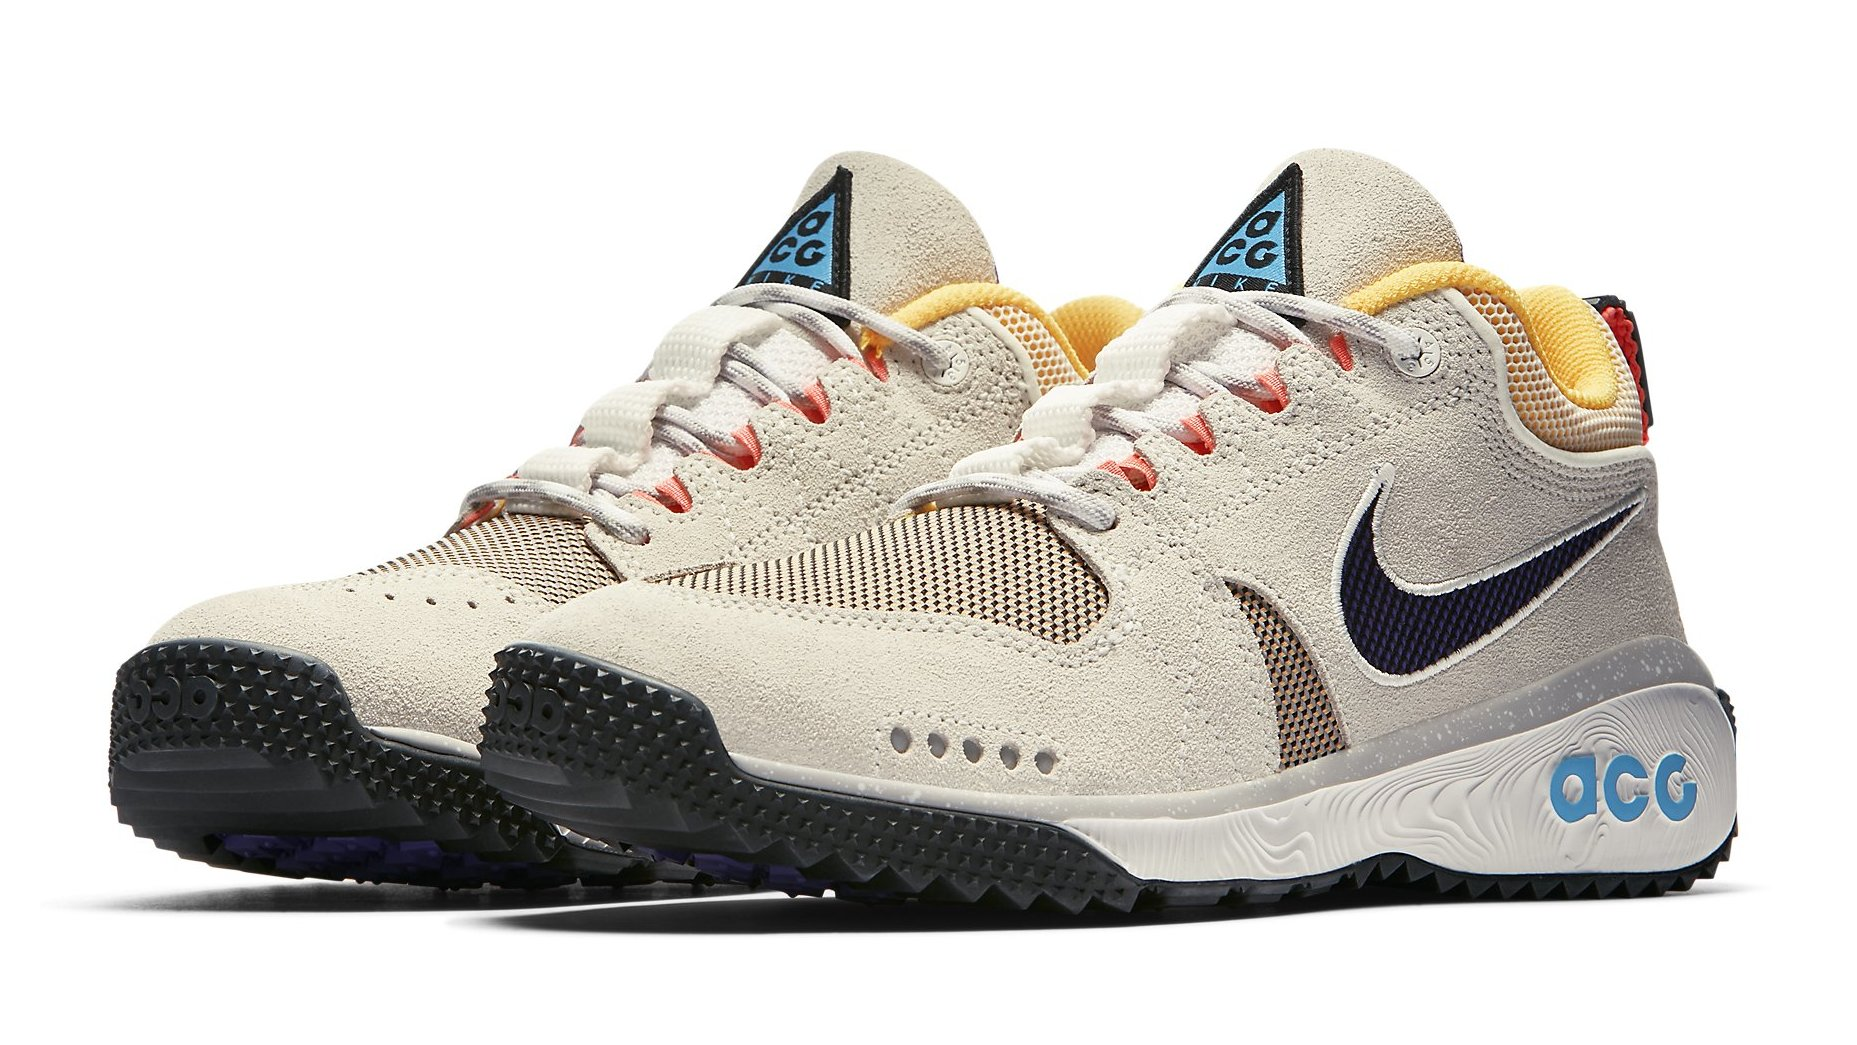 b999dafc5787d Nike ACG Dog Mountain Release Date Aug. 25